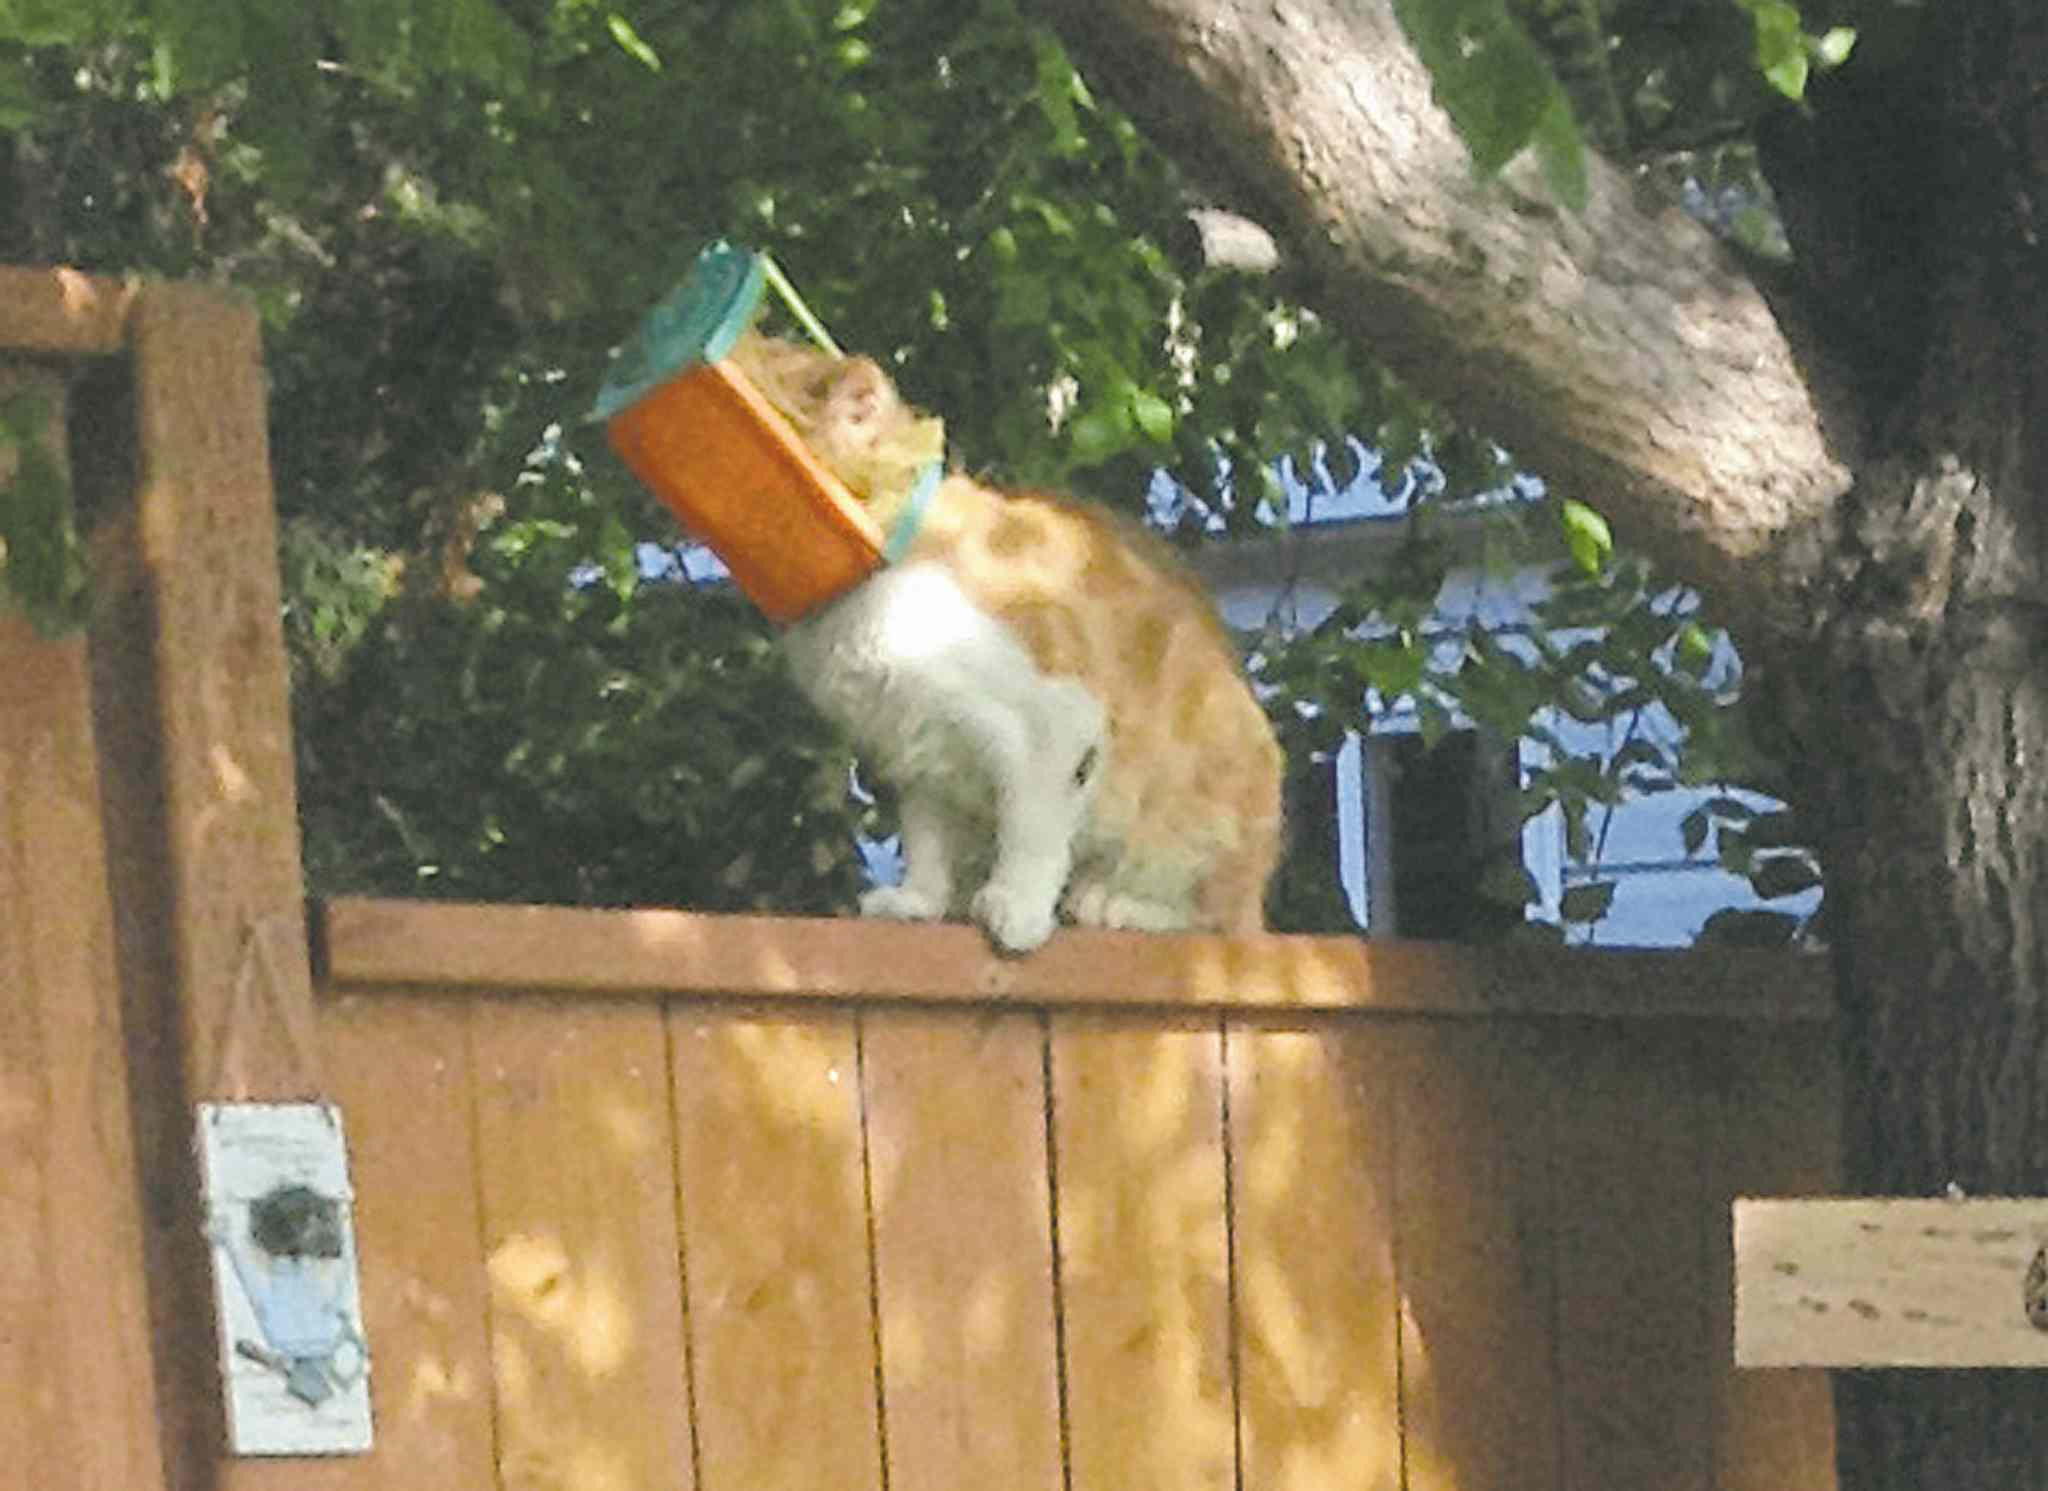 Brandon and Area Lost Animals volunteers continue to try to catch Butterscotch, a cat with its head stuck in a small bird feeder. Efforts to captured the cat have been sabotaged by a local man.